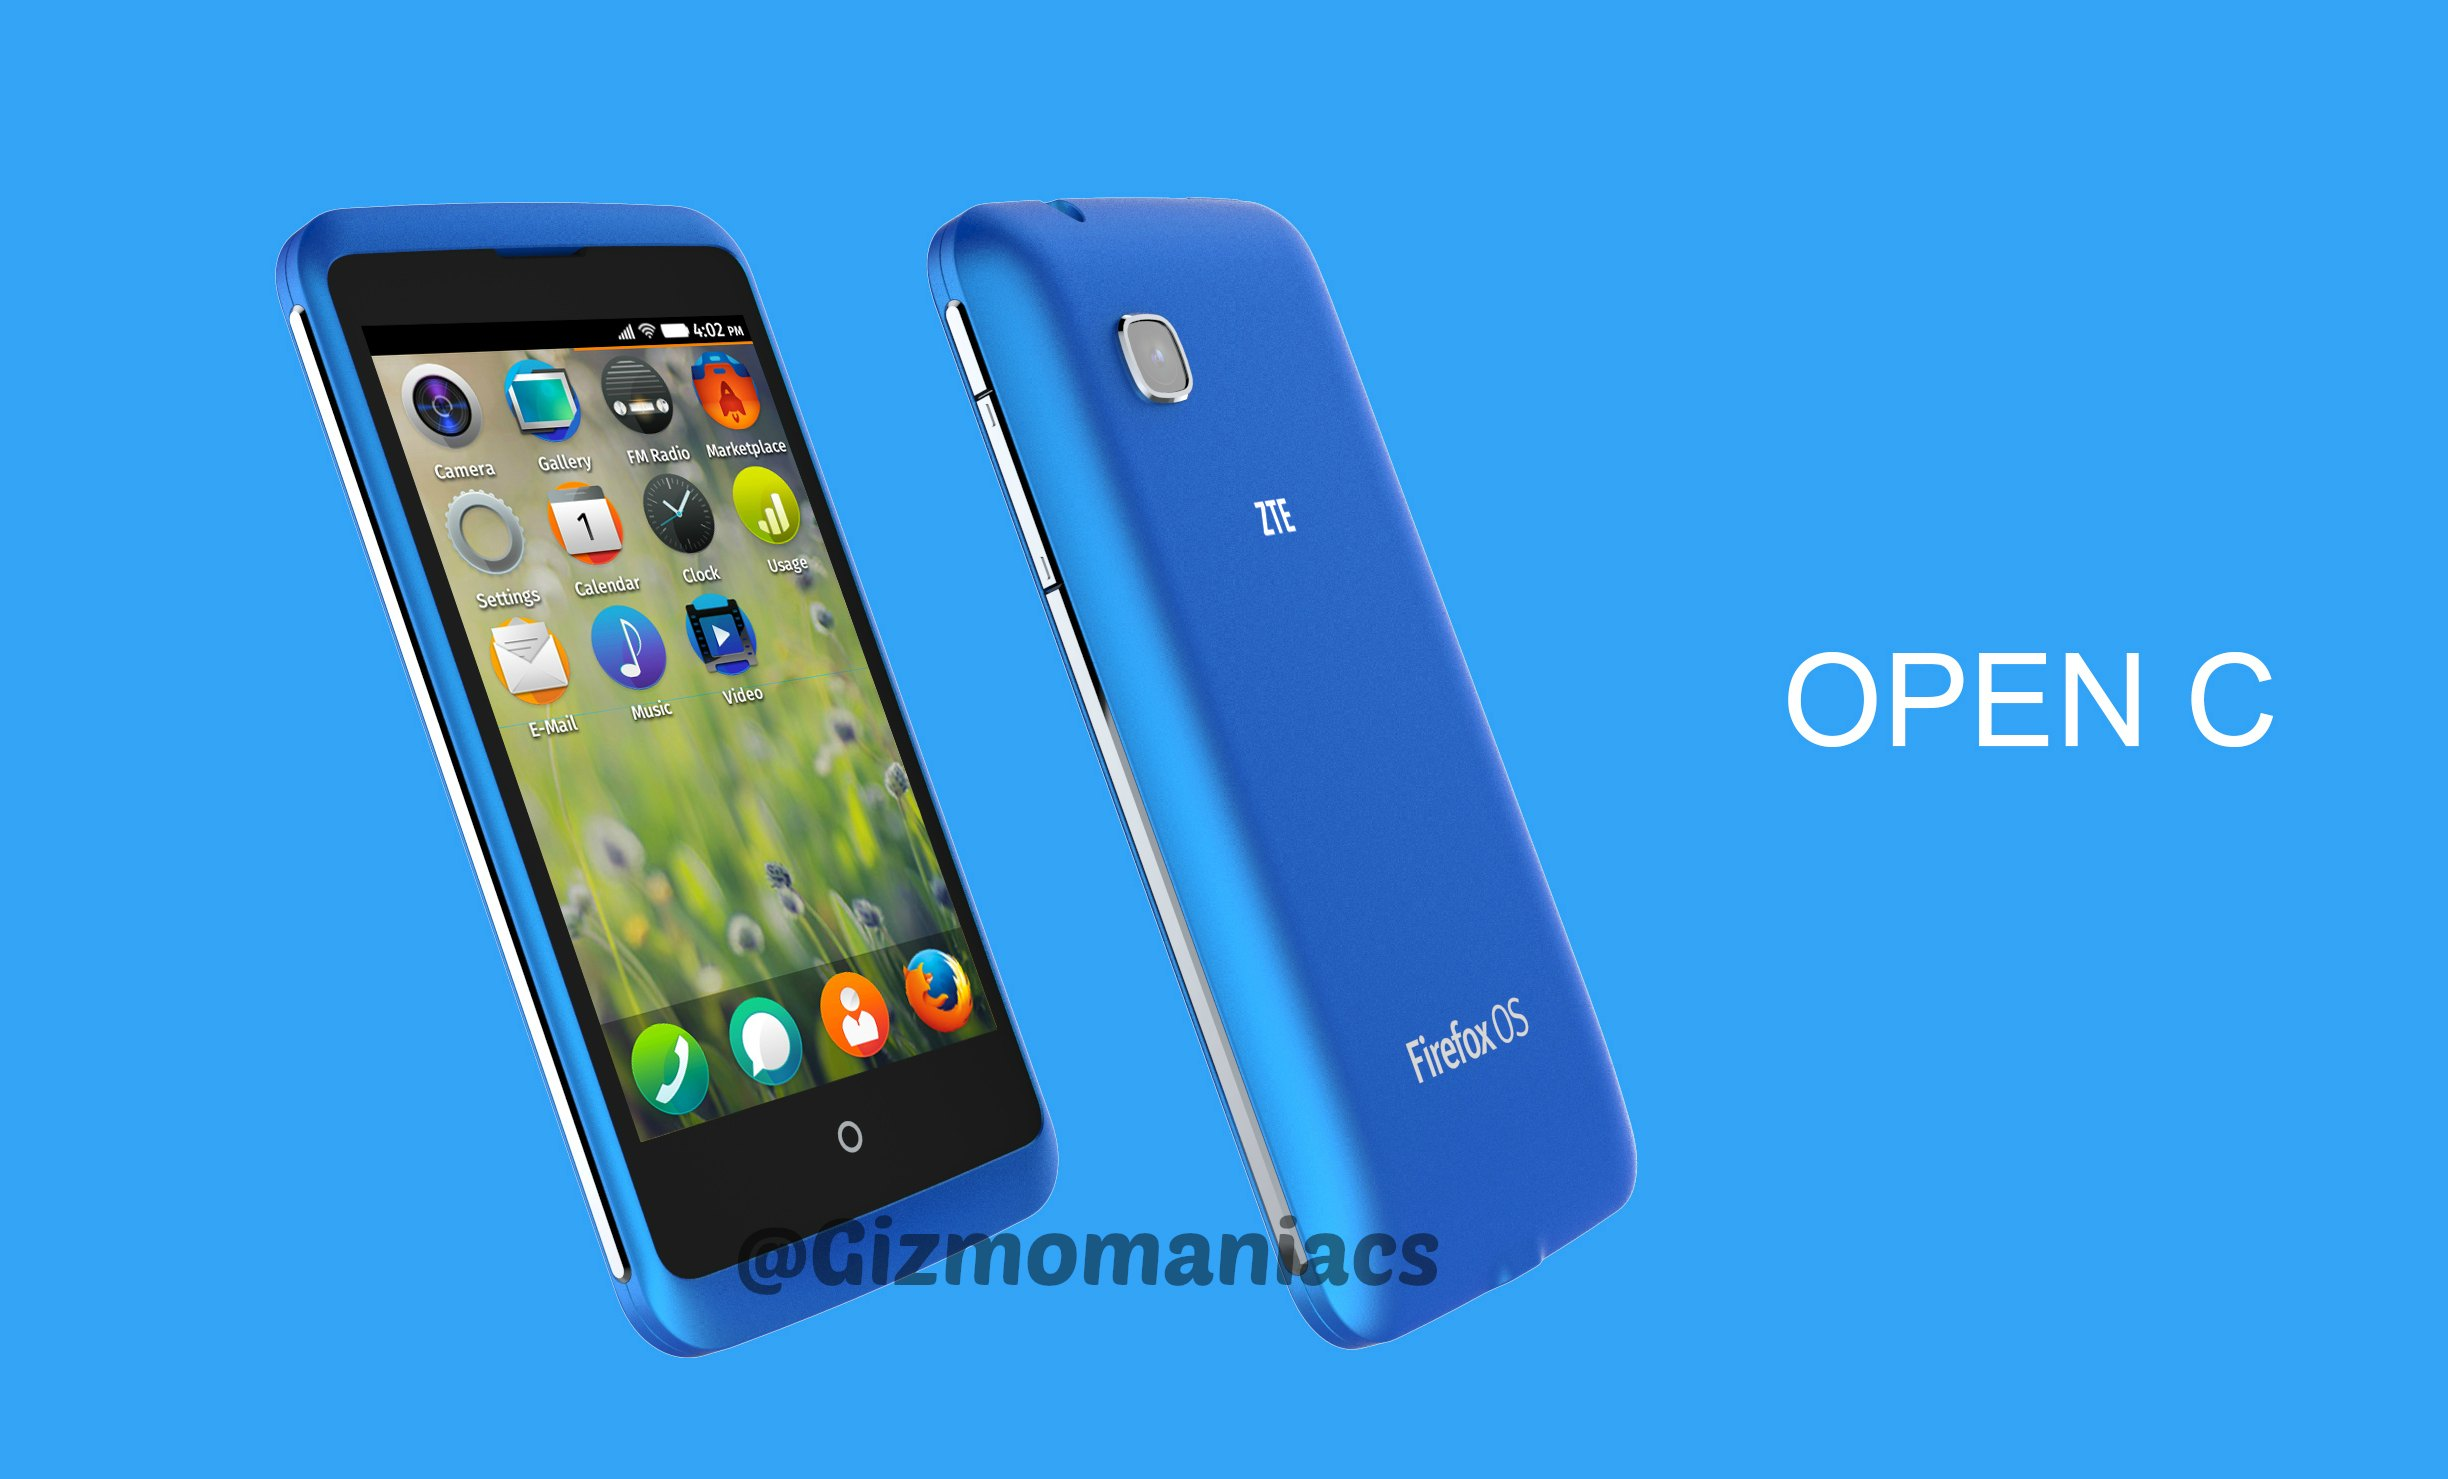 was tried zte open c specs Time Offer